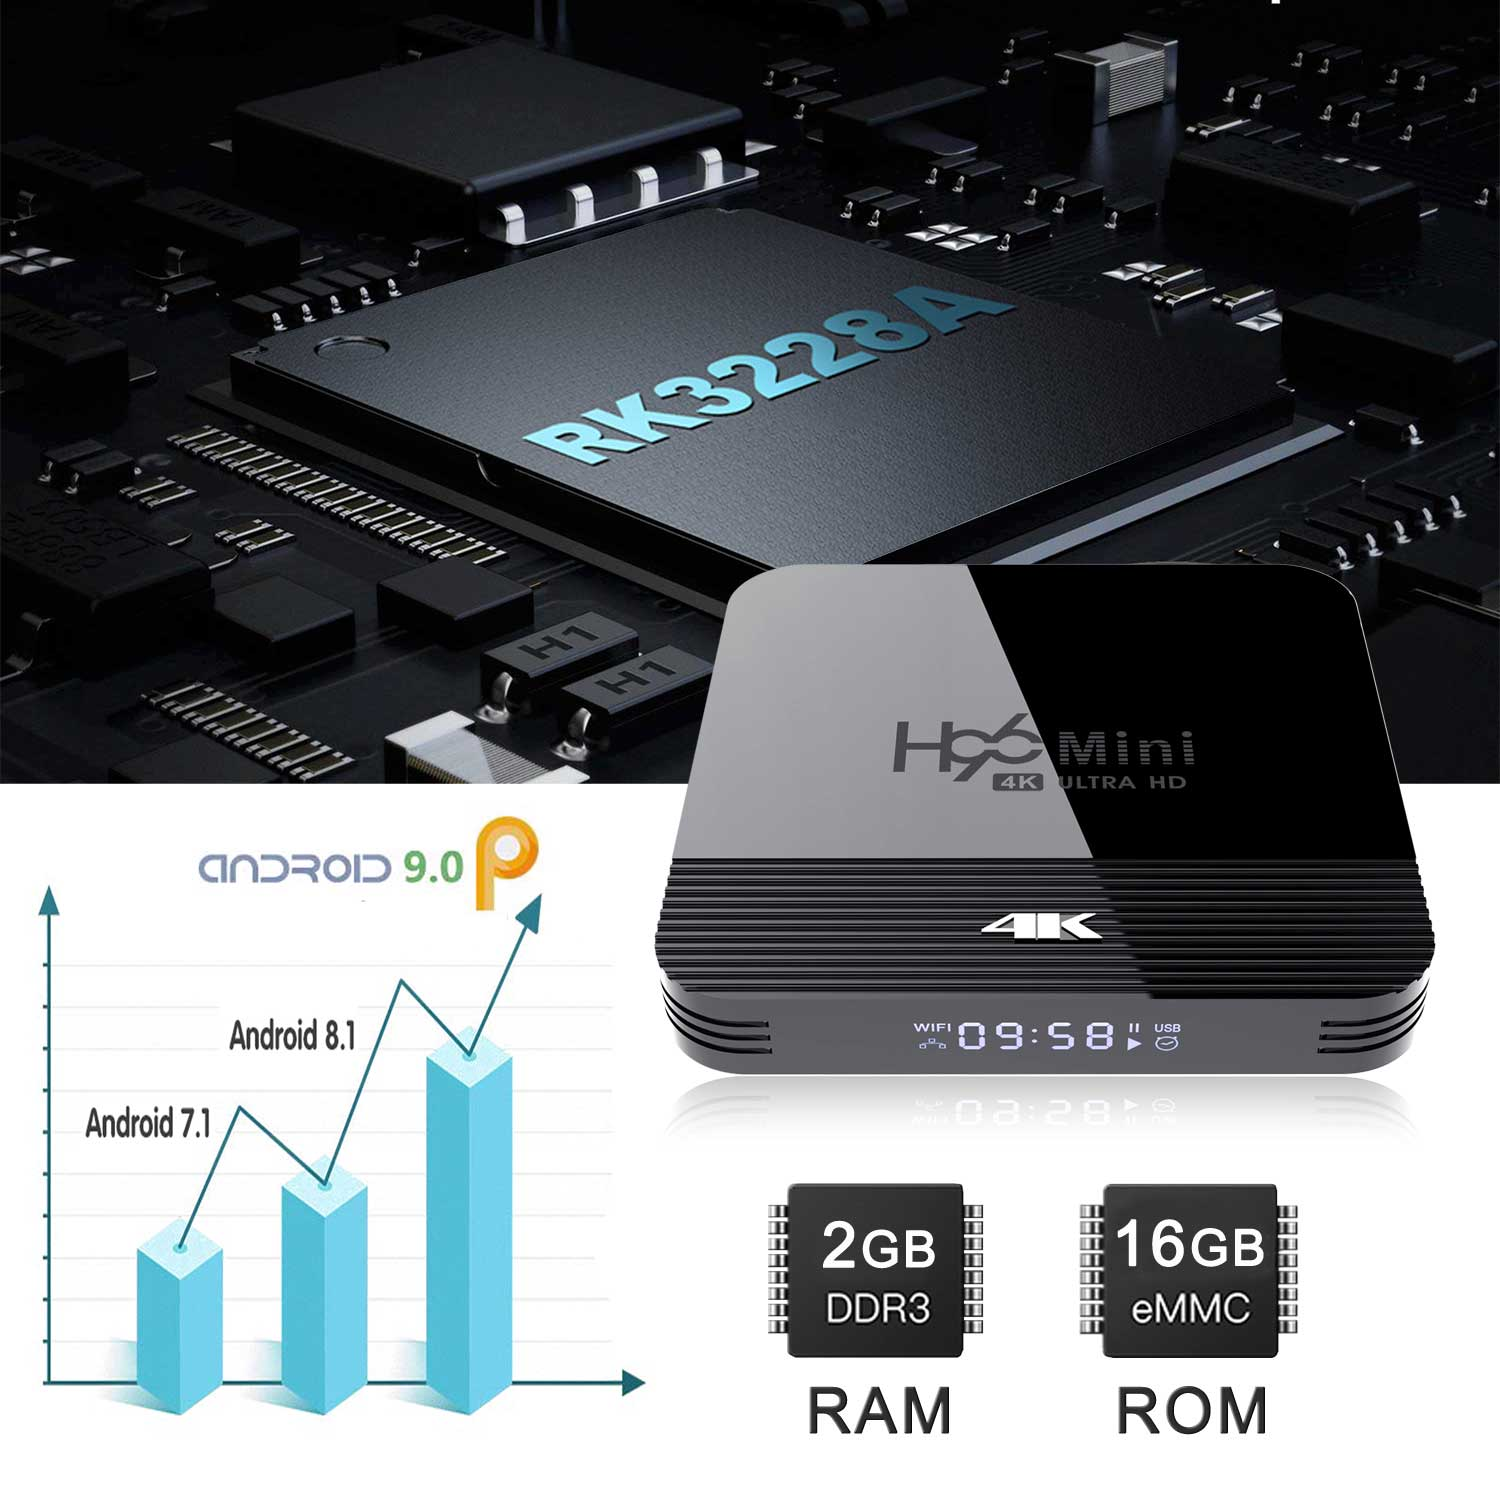 2019 Newest H96 Mini H8 RK3228A 4K TV Box 2GB+16GB Android 9.0 Set Top Box with BT4.0 2.4G/5G WiFi 2